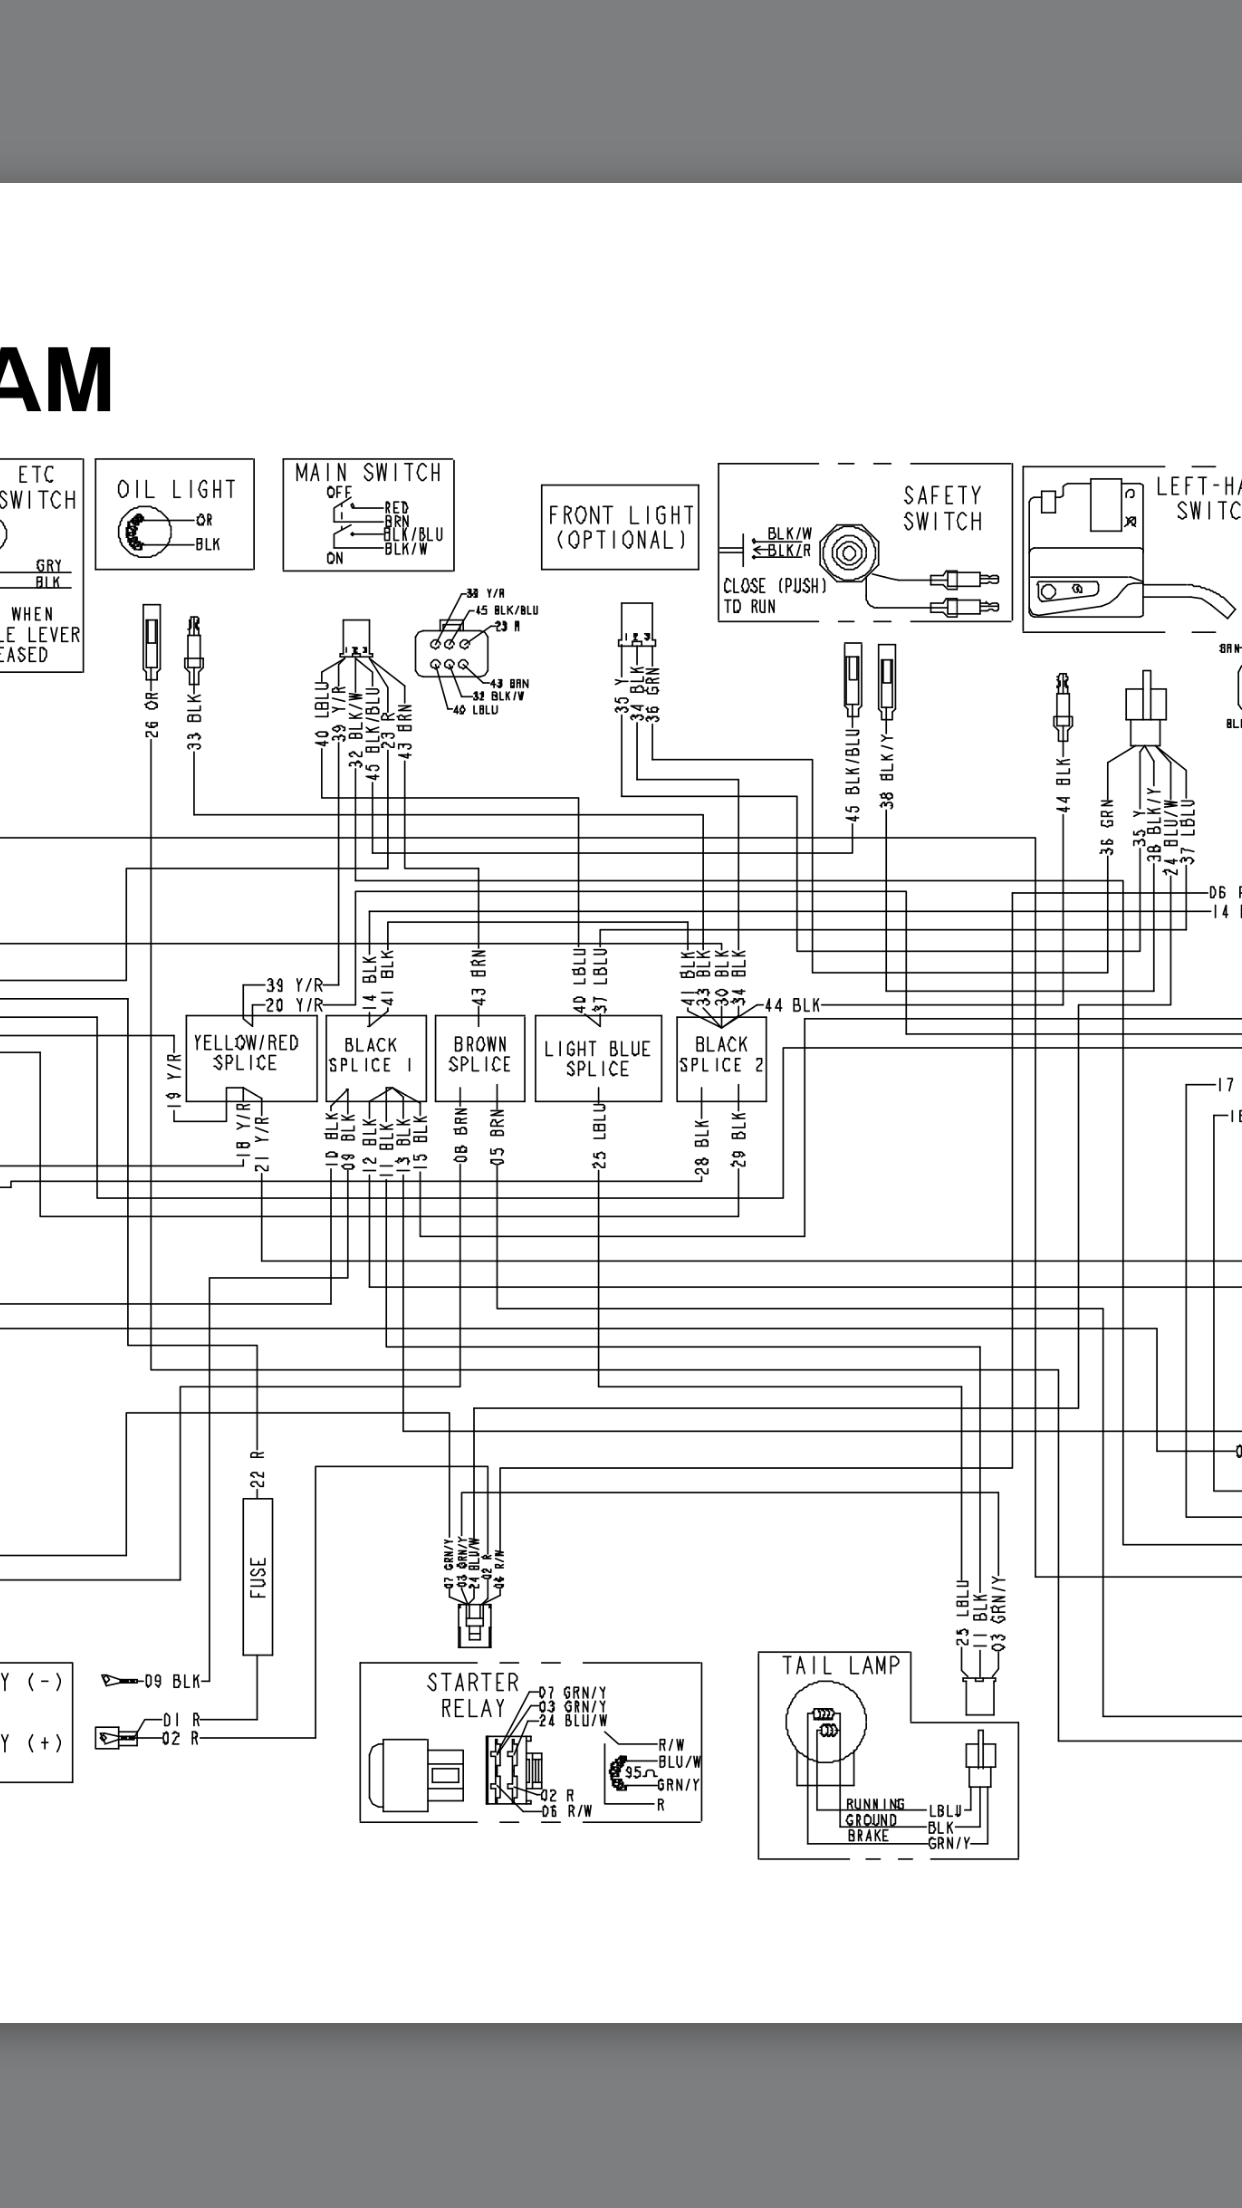 Brett Aqualine Bl50 Wiring Diagram